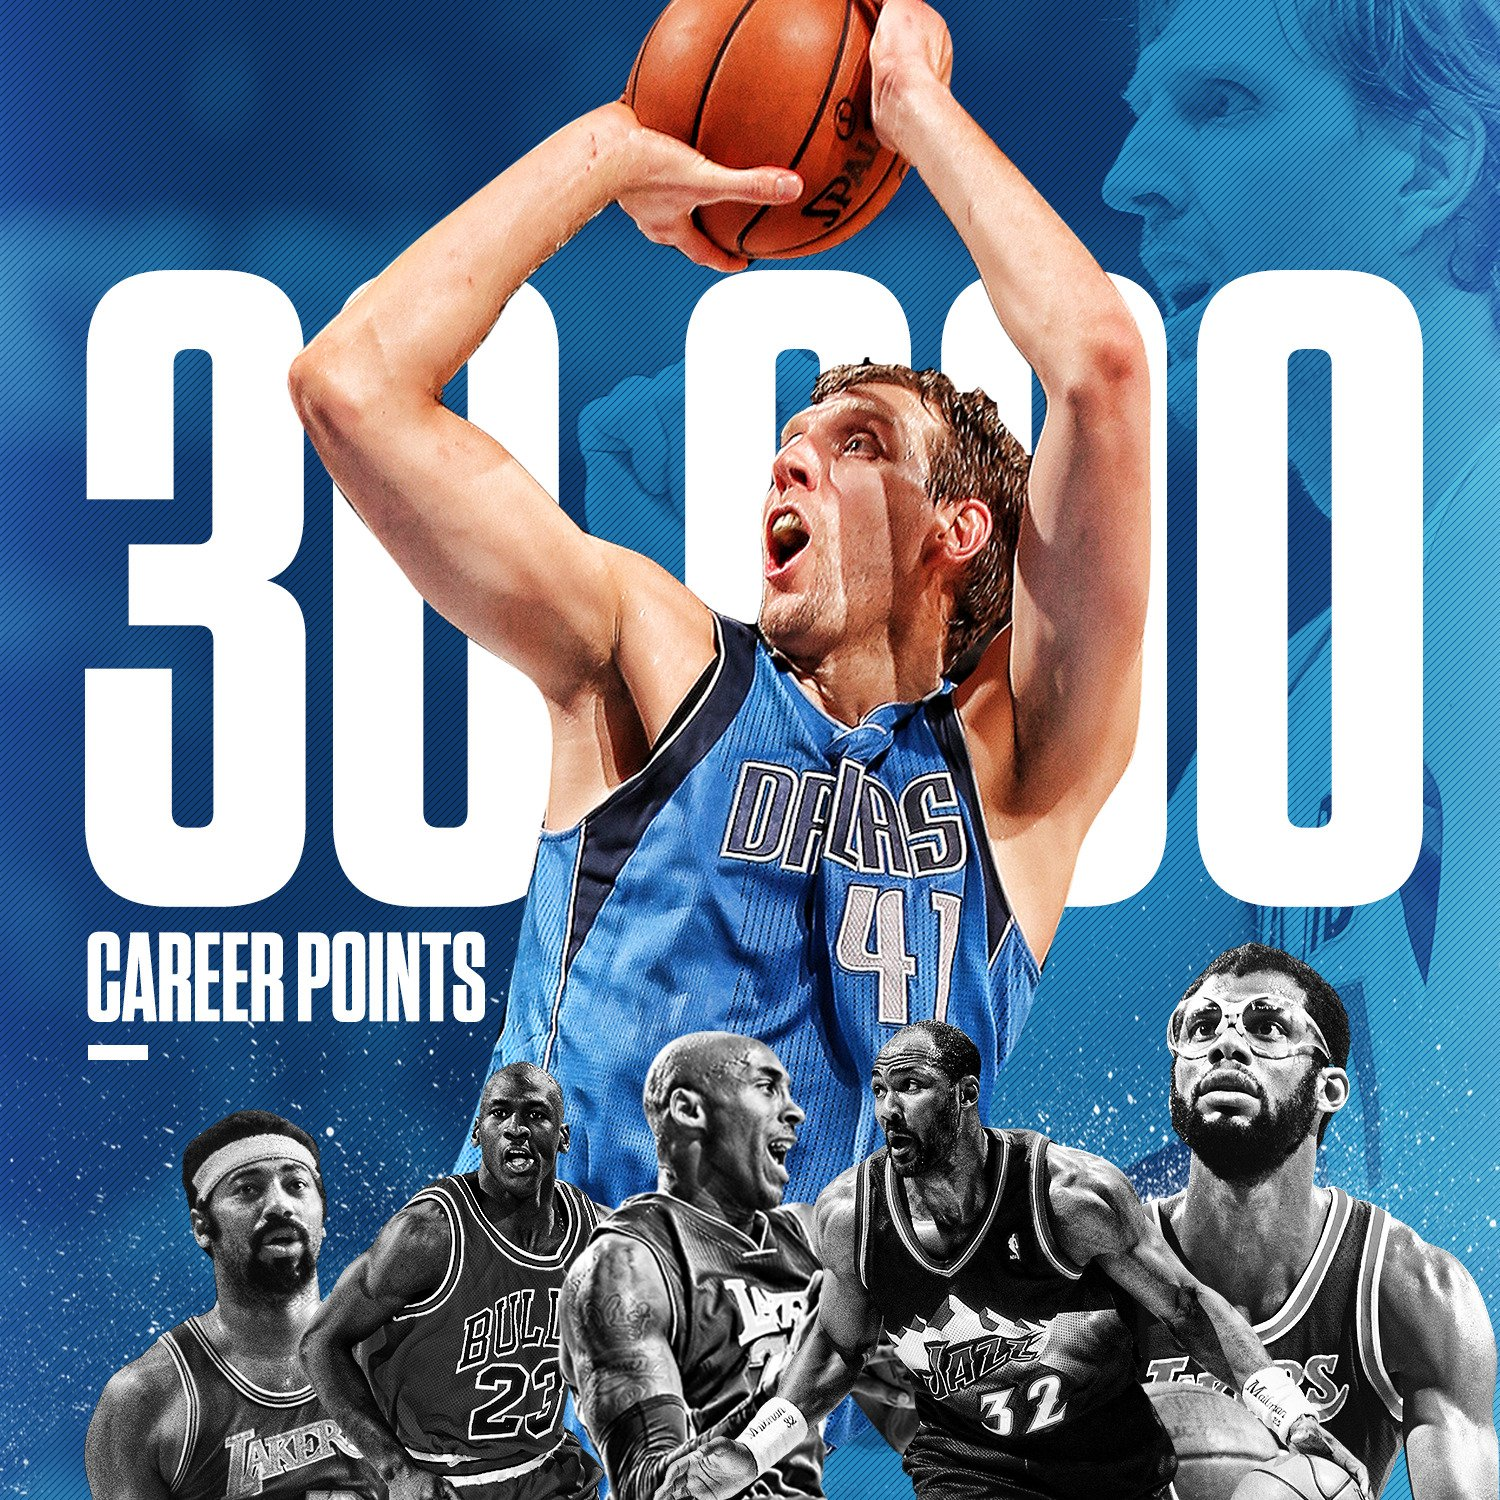 30,000 for Dirk!  Only six players have done that in NBA history. https://t.co/4qdpy0mRIx